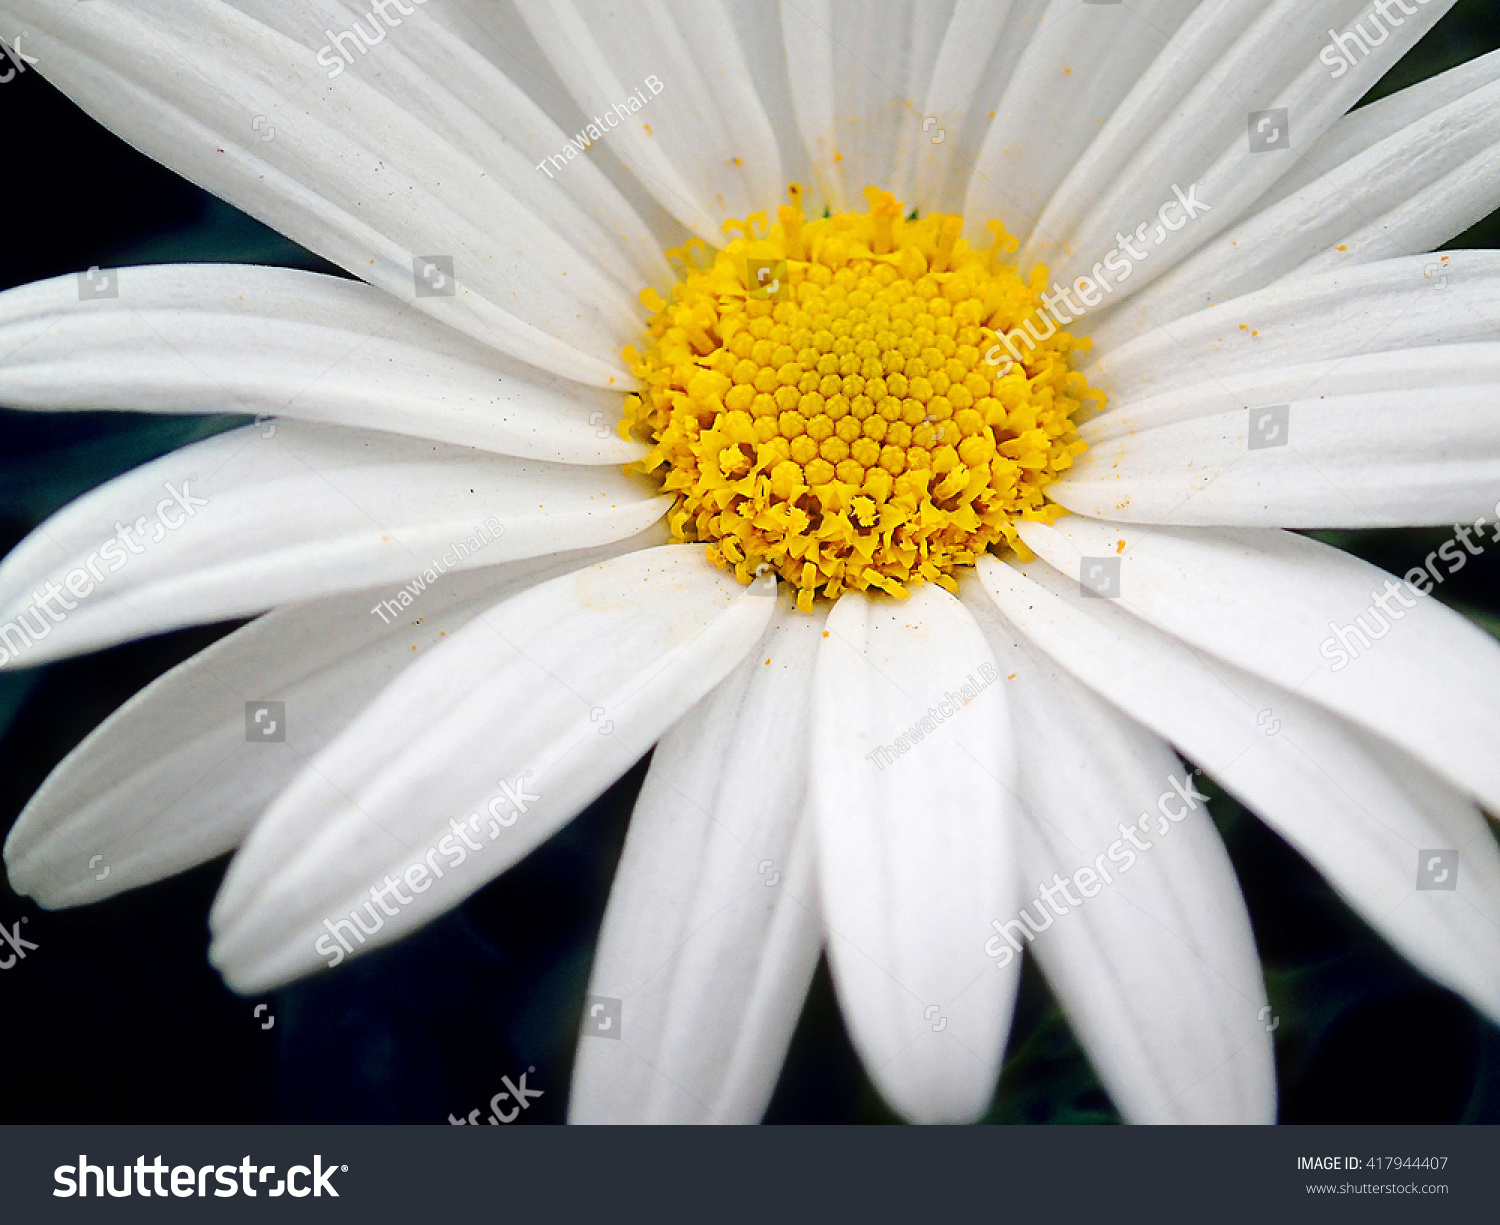 Macro Of White Cosmos Sonnata Daisy Flower On Black Background Ez